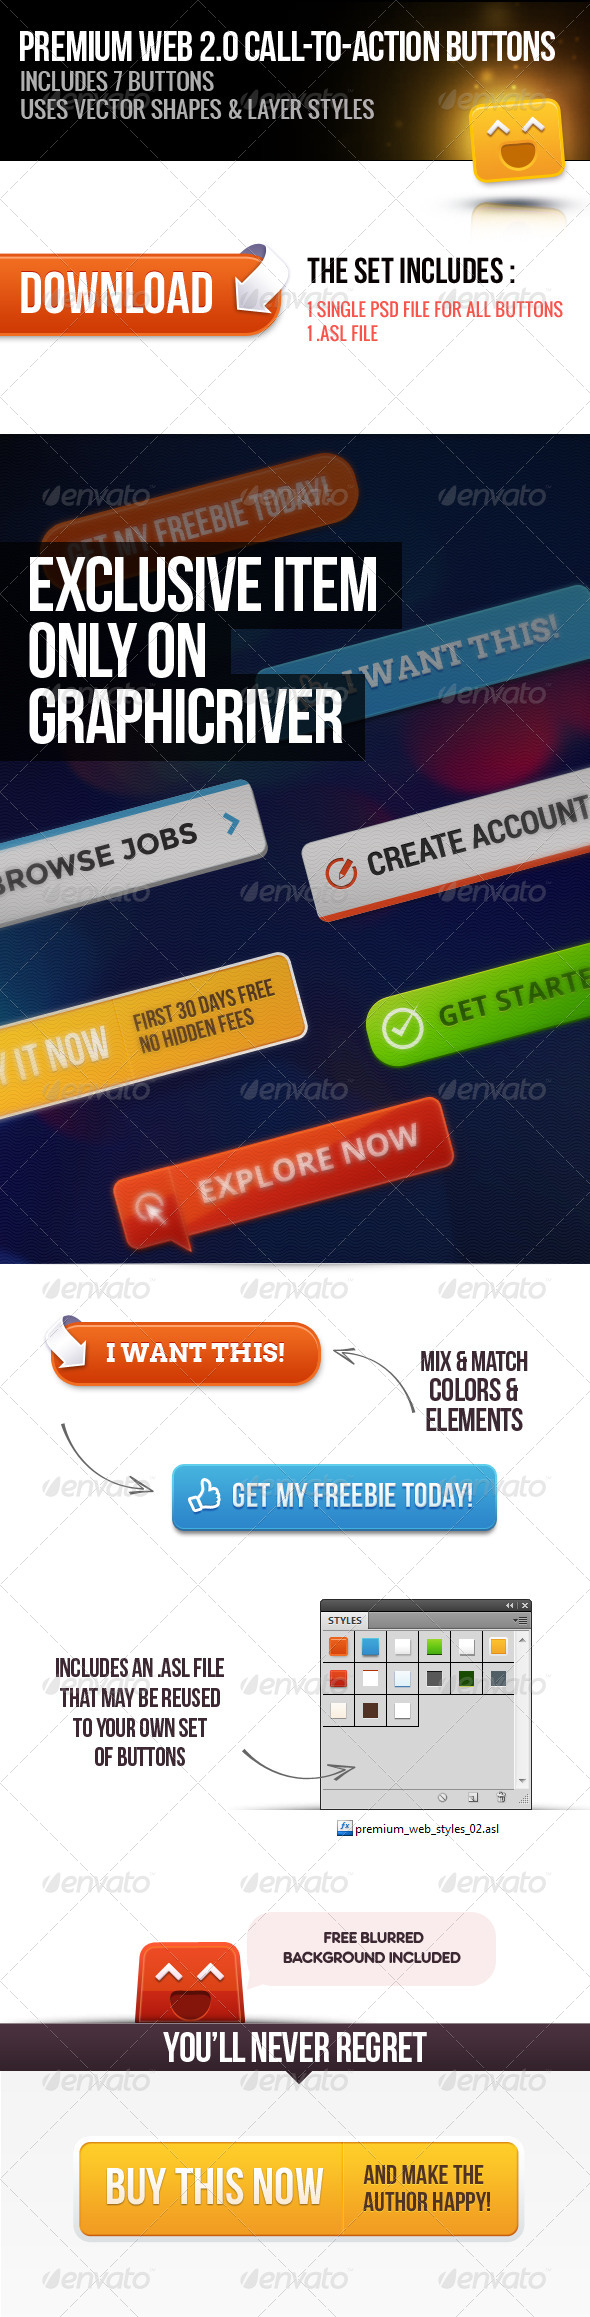 GraphicRiver Premium Web 2.0 Call to Action Buttons 02 5179546